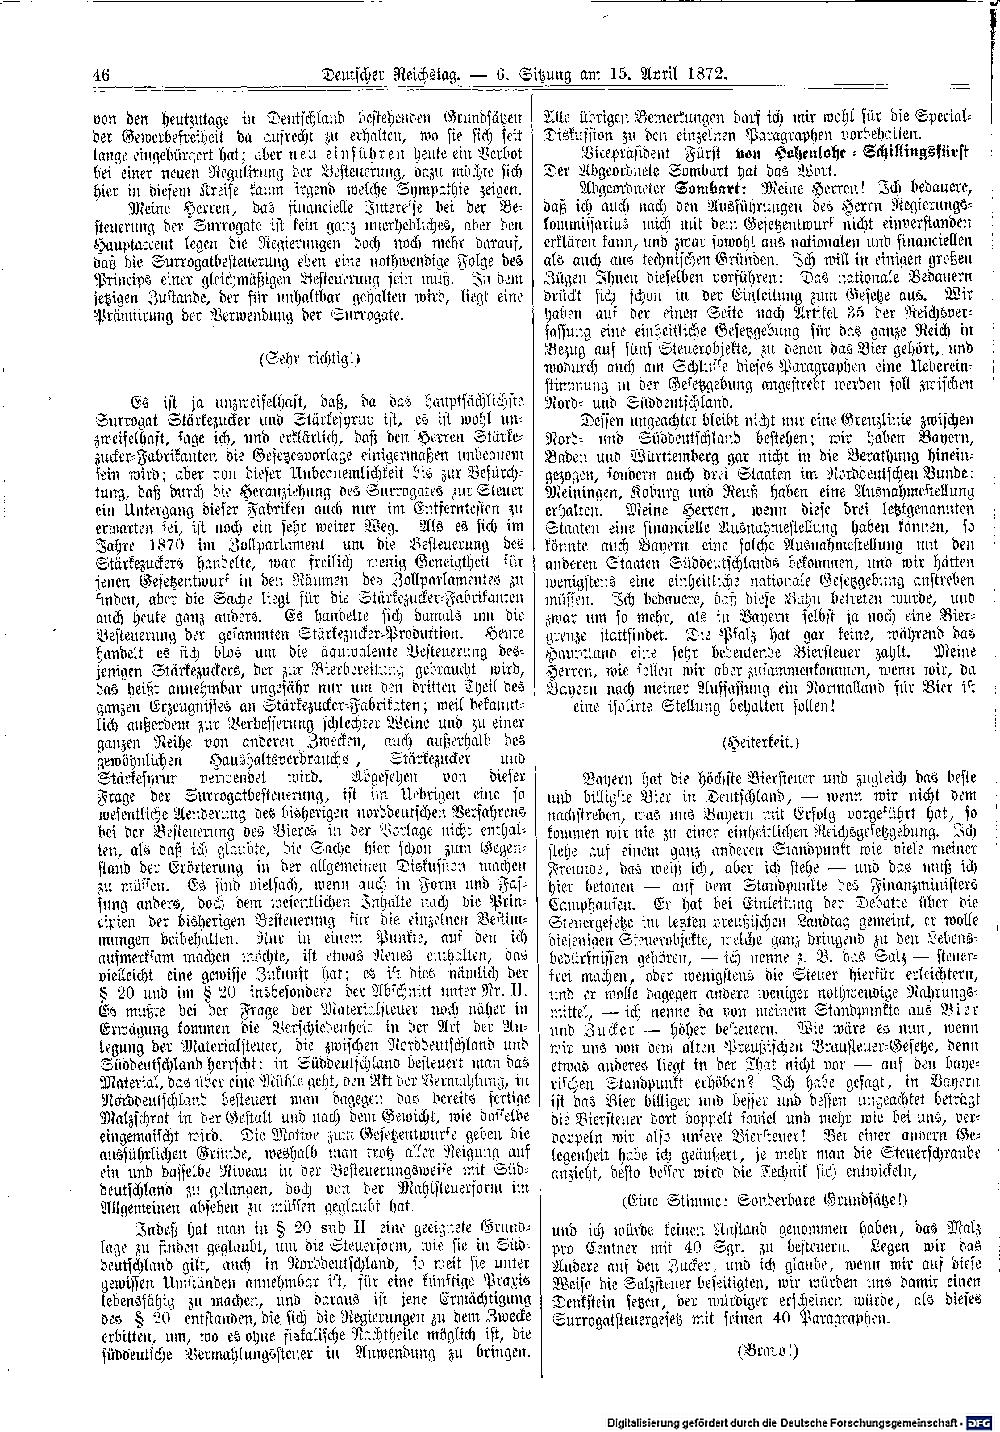 Scan of page 46